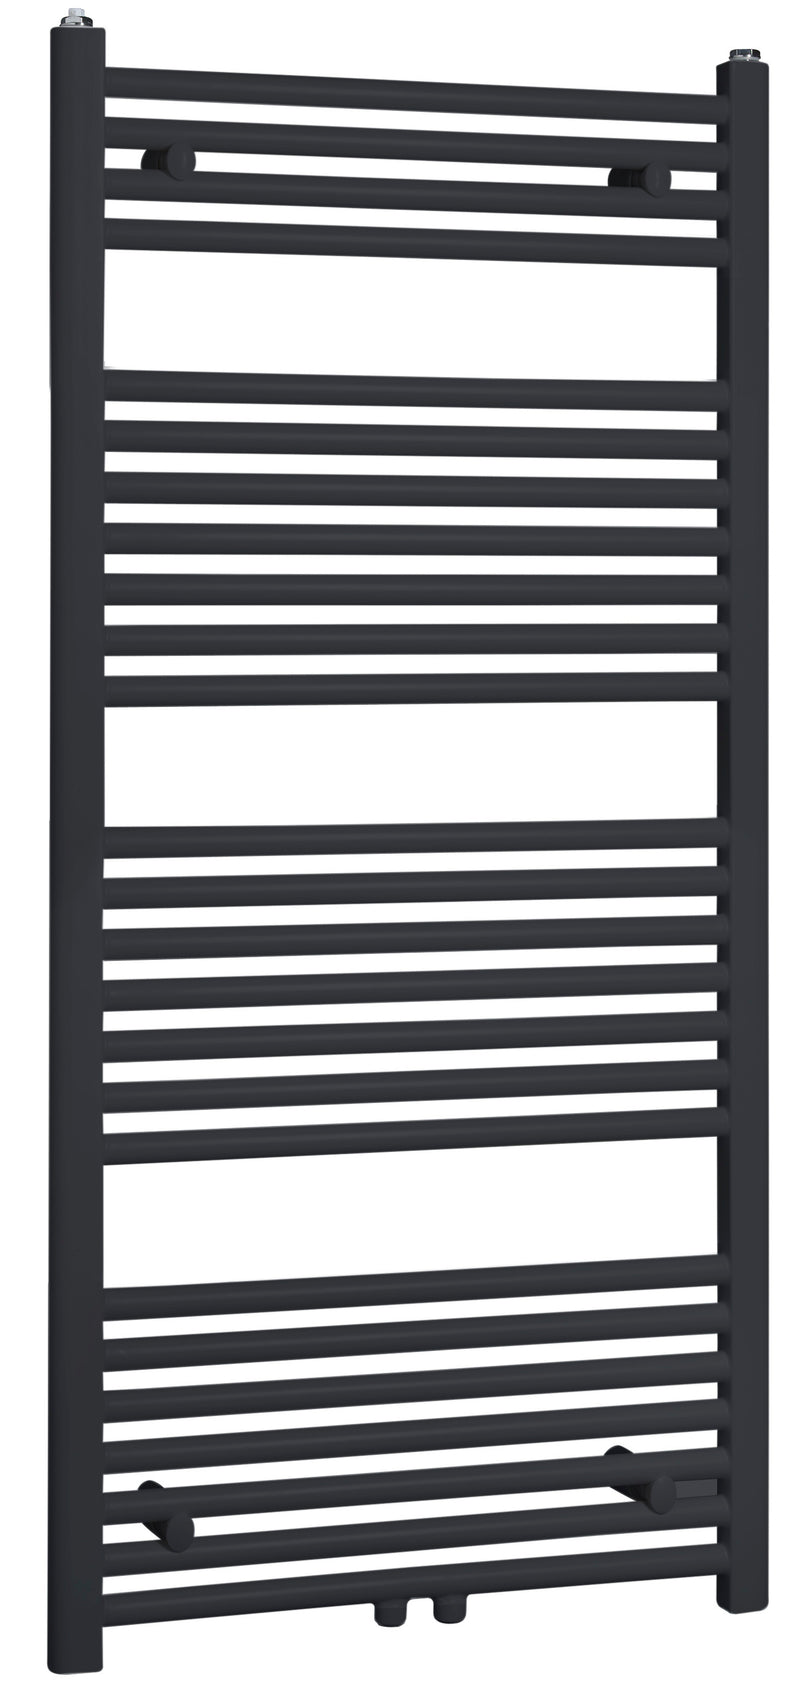 Best-Design Zwart-ral 9011 Zero radiator recht model 1200x600mm